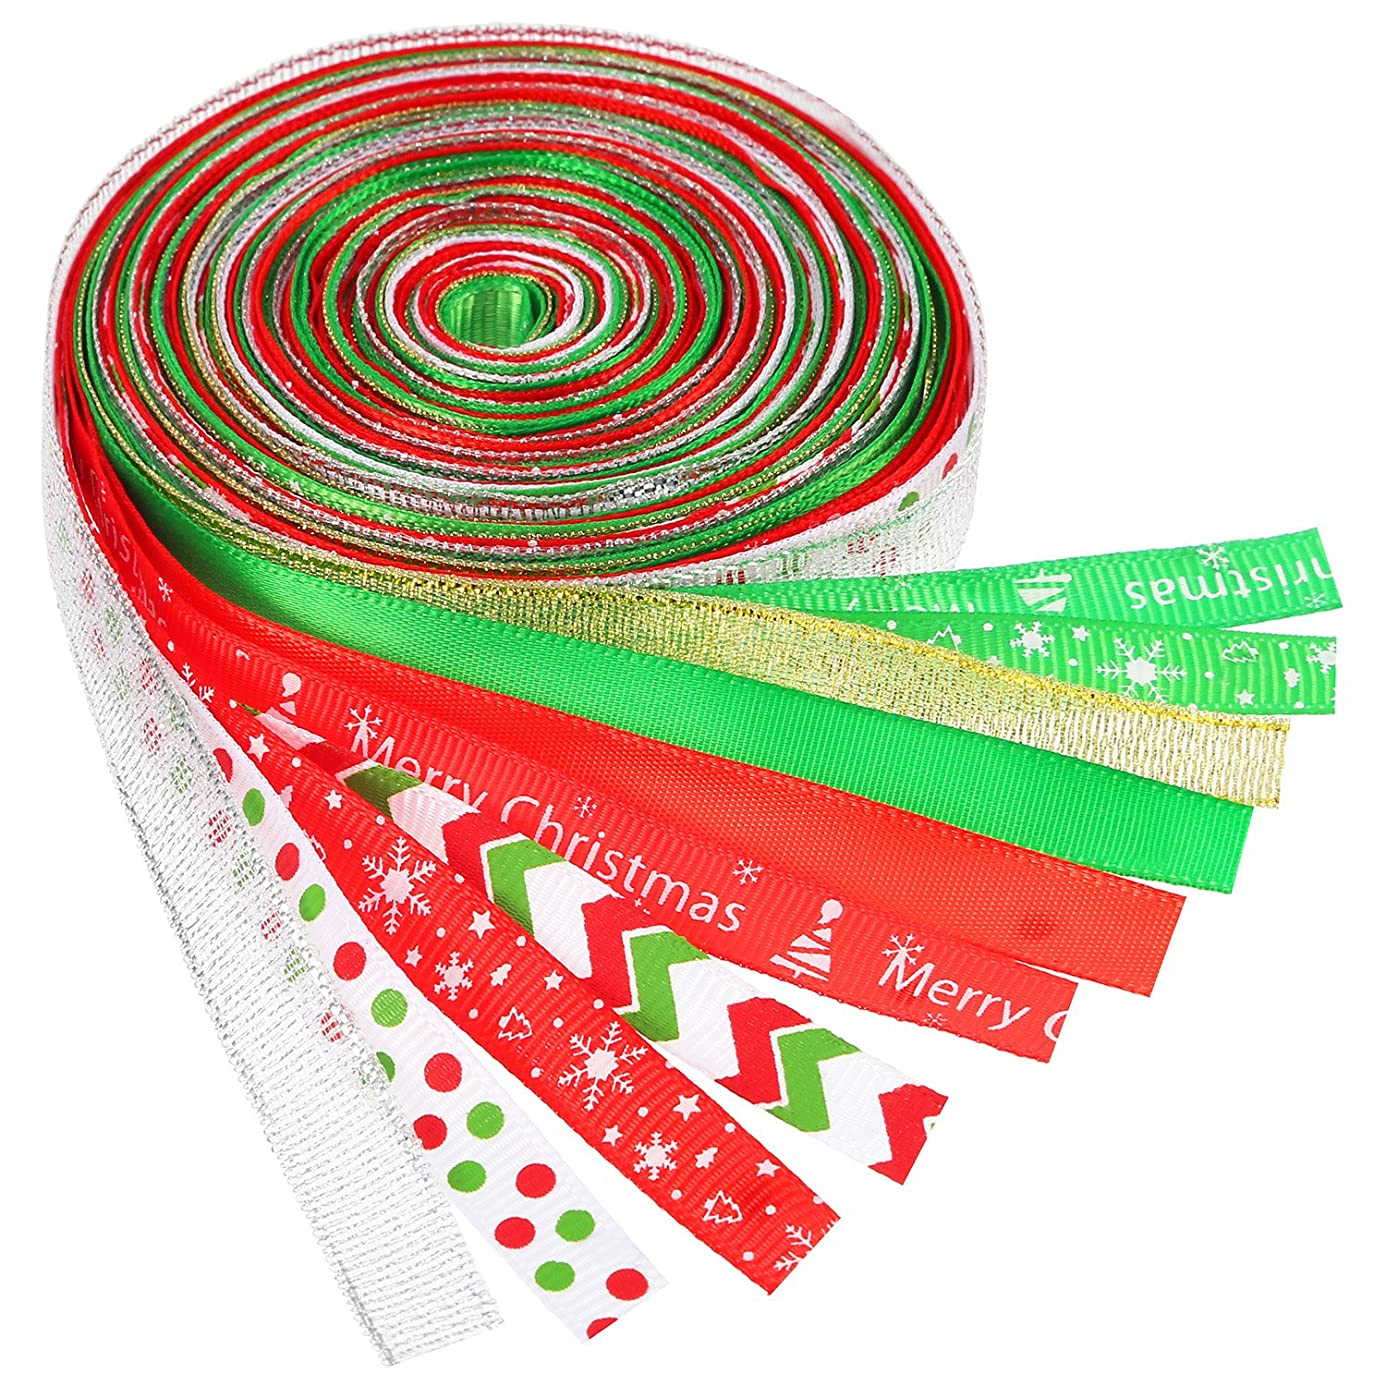 BBTO 10 Pieces Christmas Grosgrain Ribbon Winter Holiday Ribbon for Gift Wrapping lpf6862641